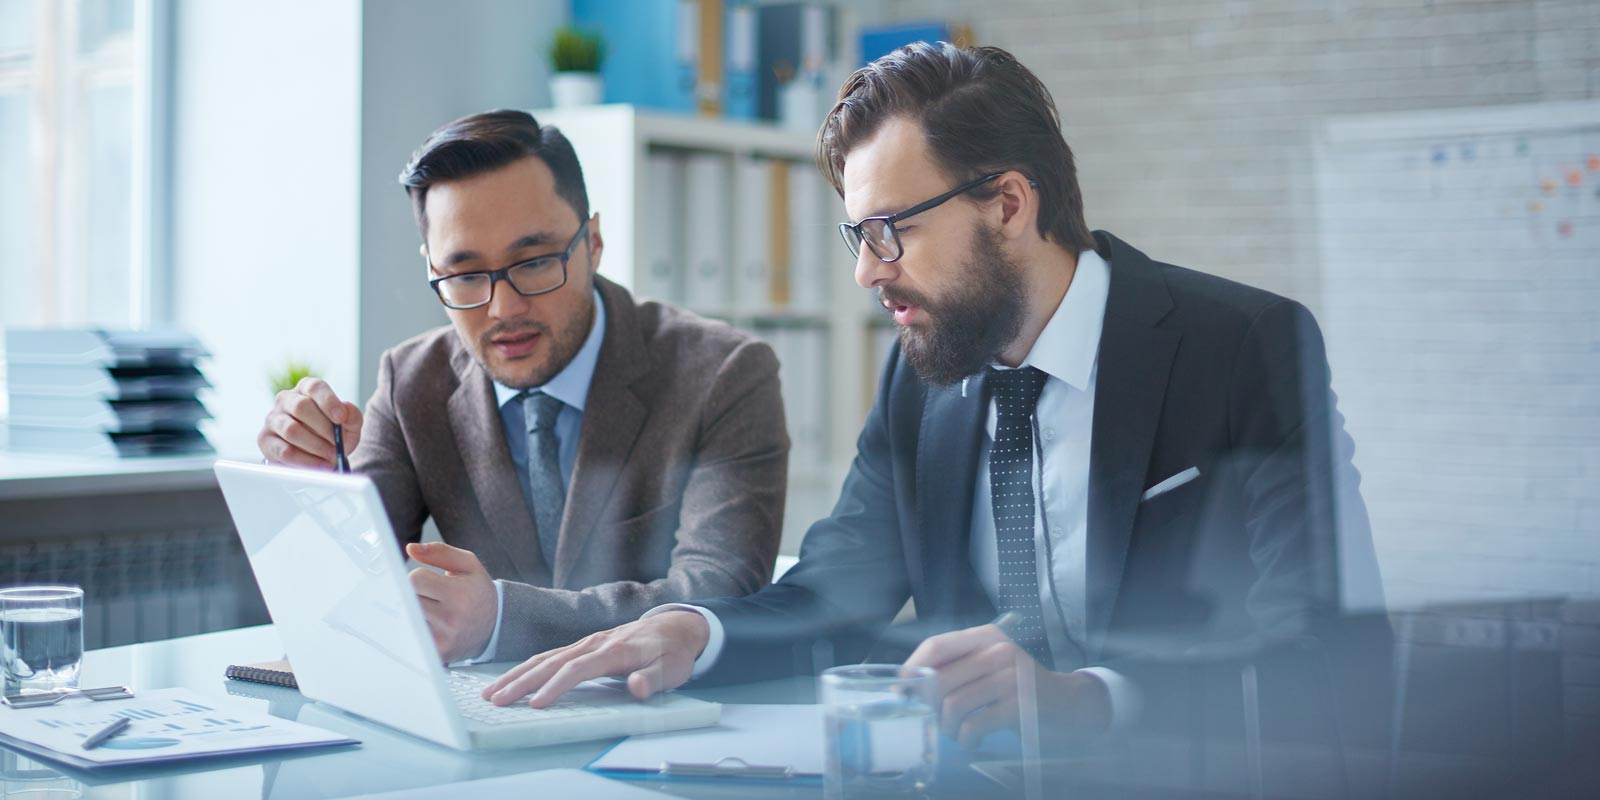 Business Consultant working with company to develop effective strategies